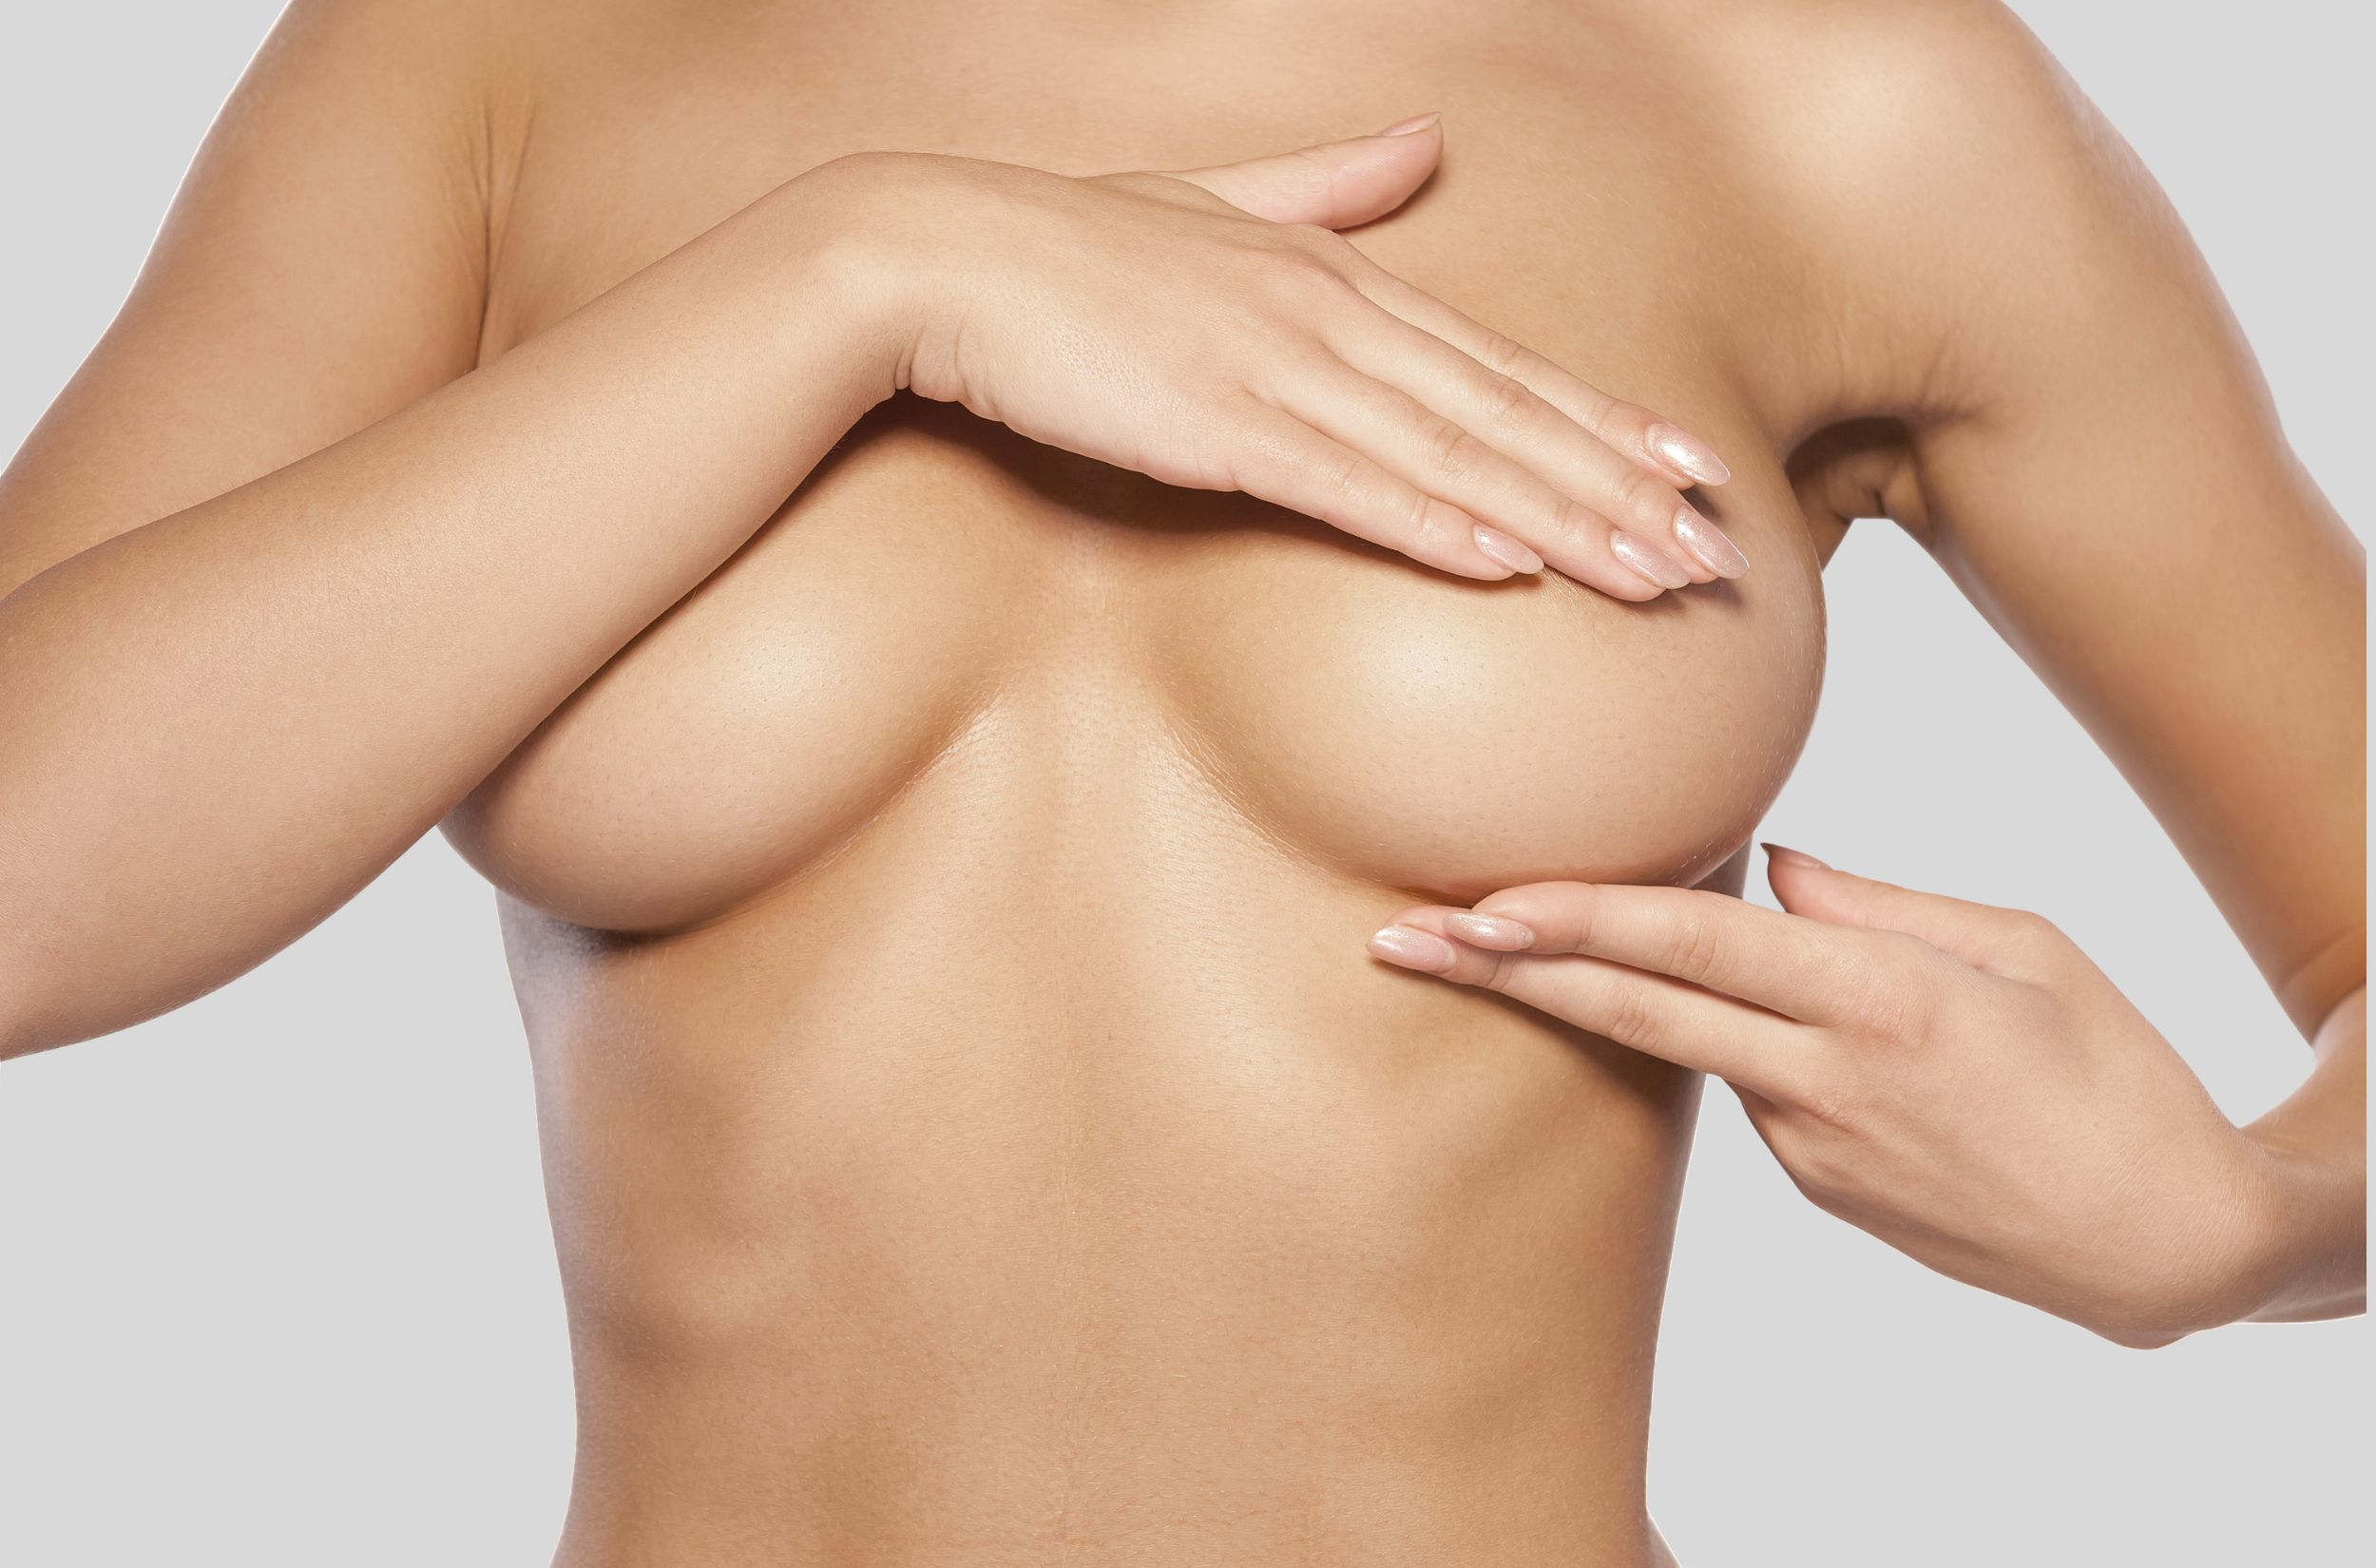 key treatment areas - Nipple Correction surgery targets nipple inversion, enlarged nipples and widened areolae, and is suitable for both men and women.